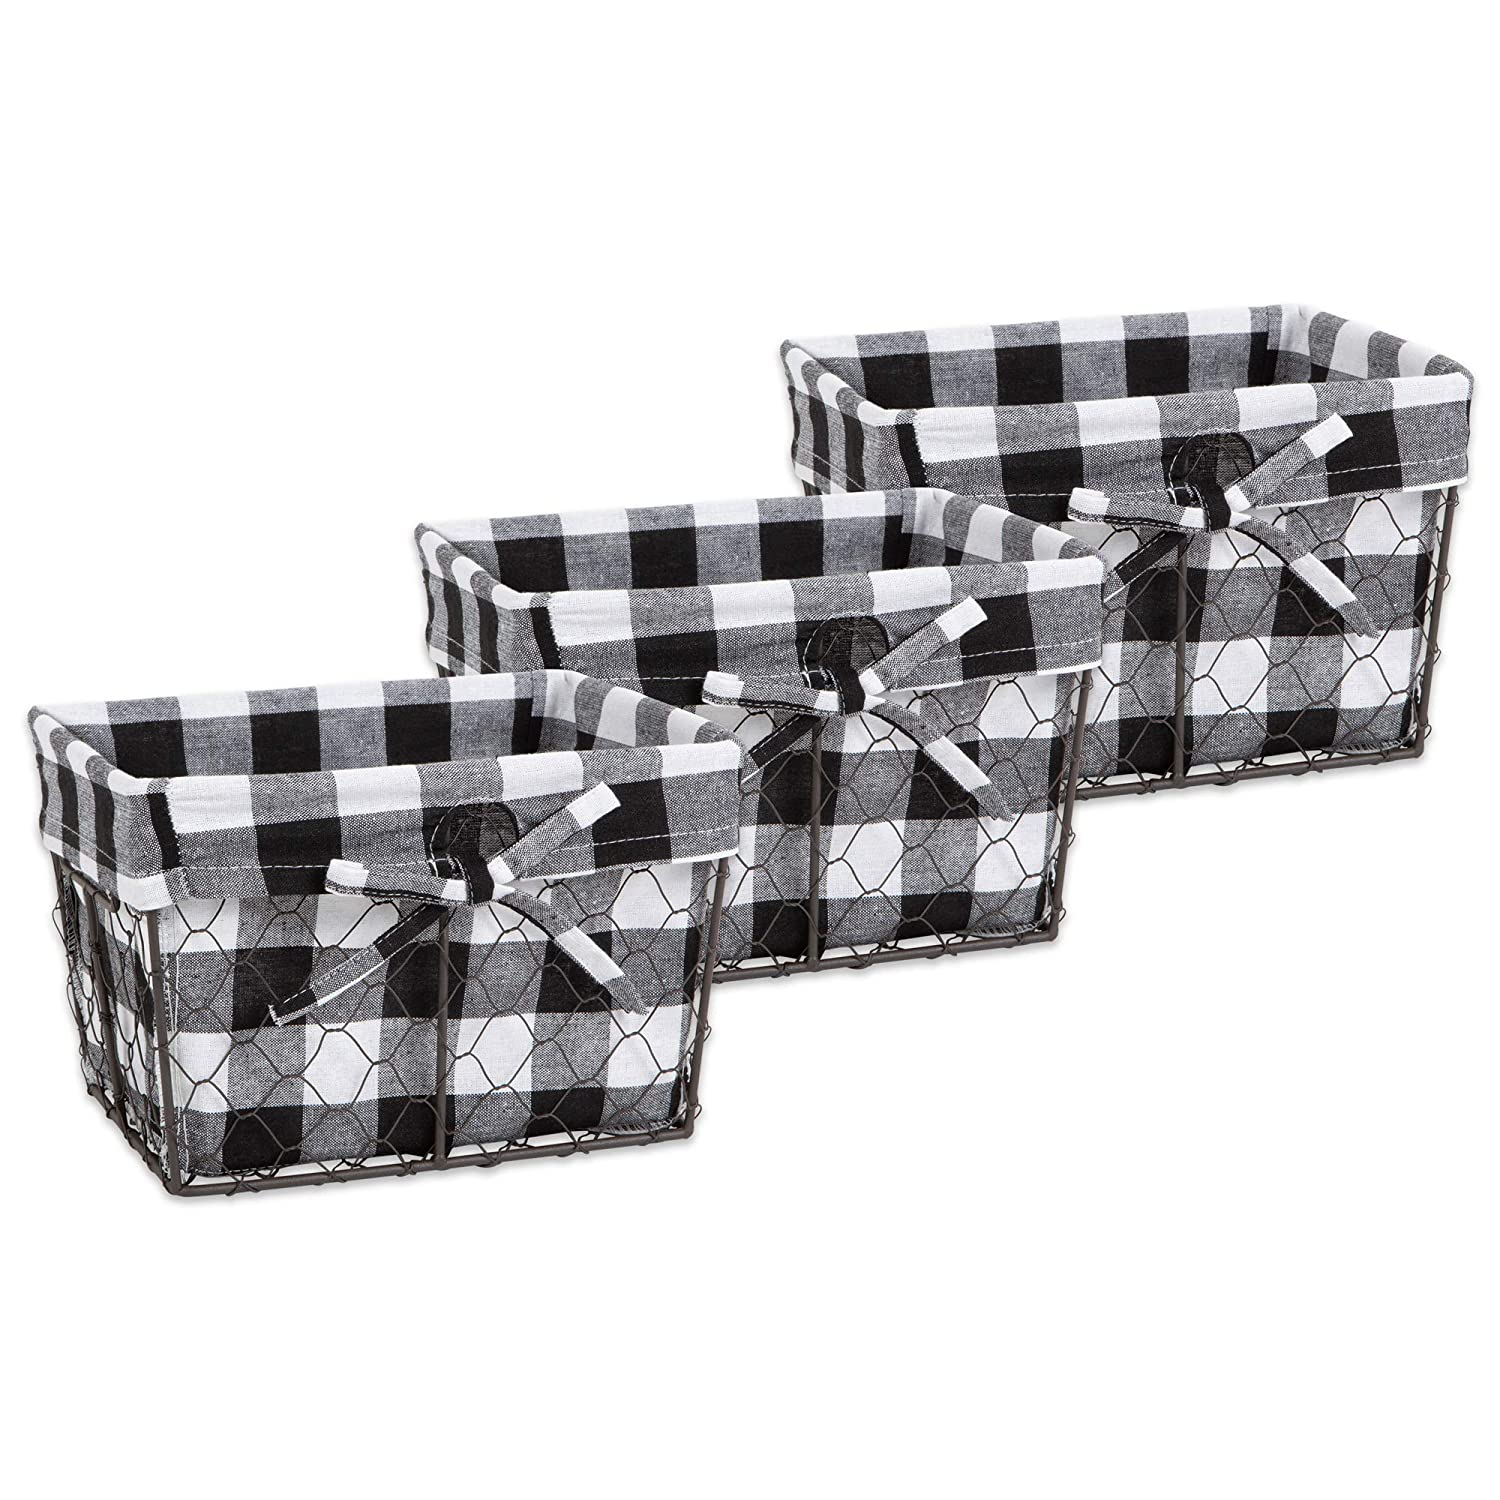 DII Z02321 Vintage Food Safe Metal Chicken Wire Storage Baskets with Removable Fabric Liner for Home Décor or Kitchen Use, Set of 3, Black & White Check